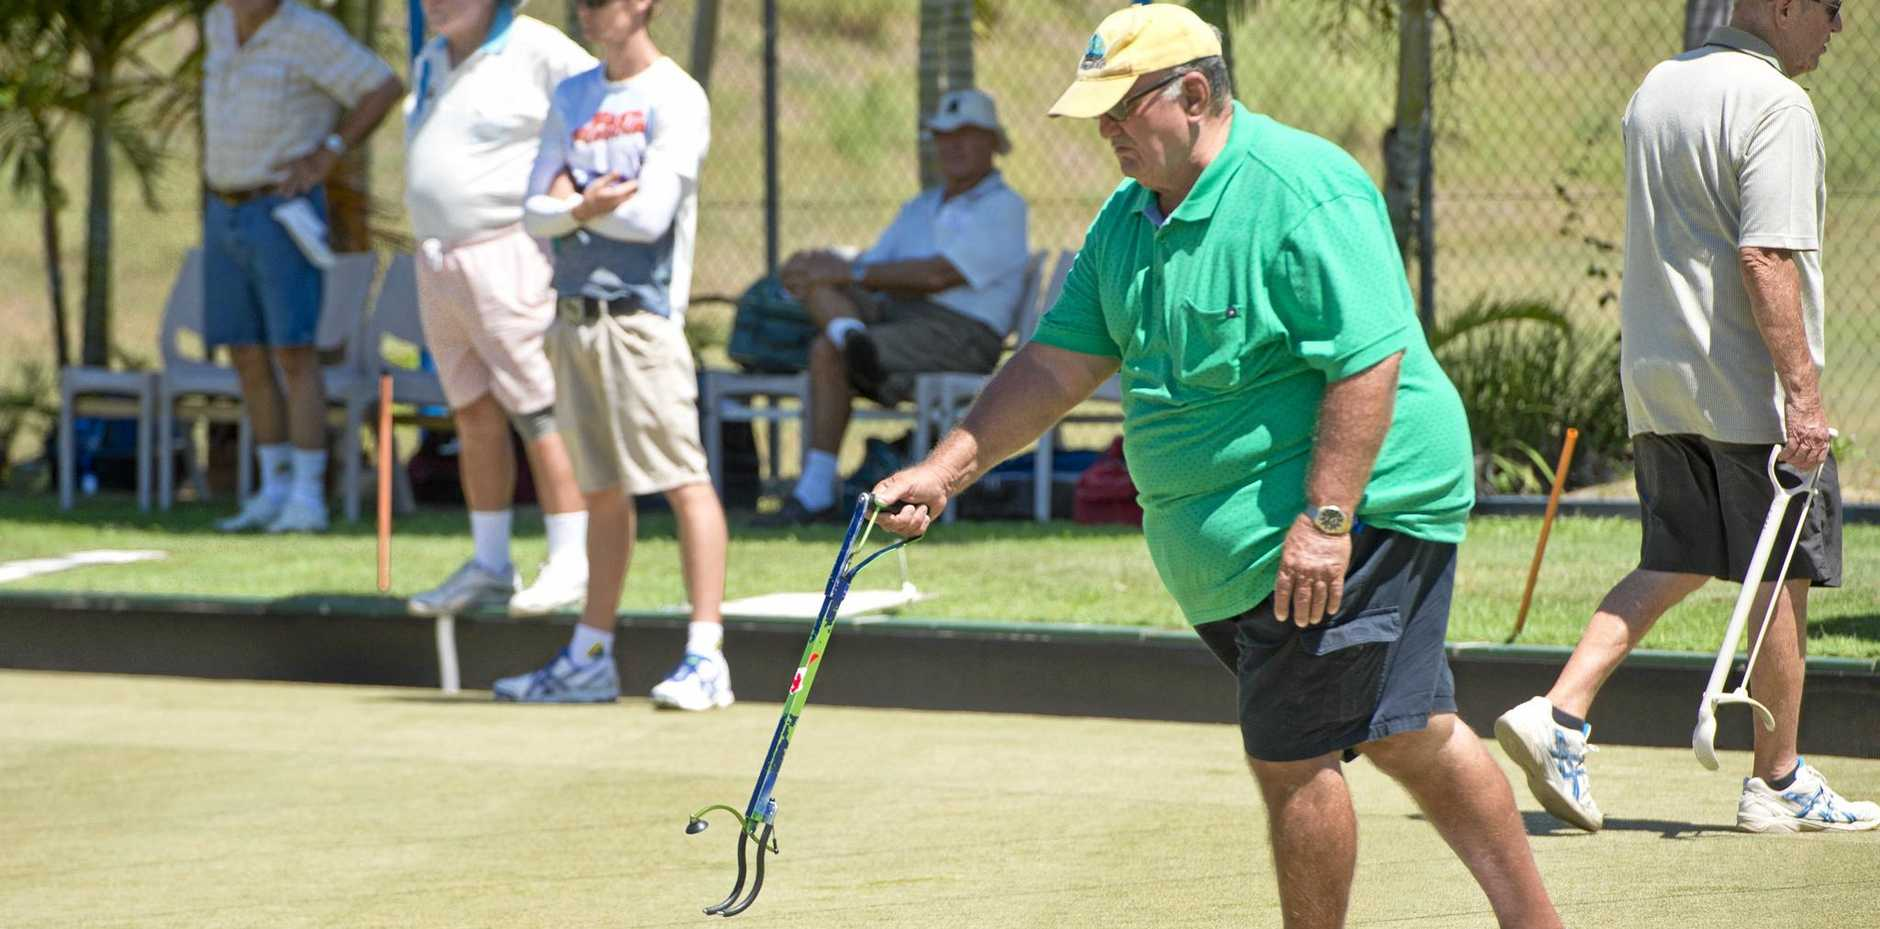 KEEN: Potential member Ken Worley demonstrates his bionic arm at the Alumina Bowls Club Open Day.